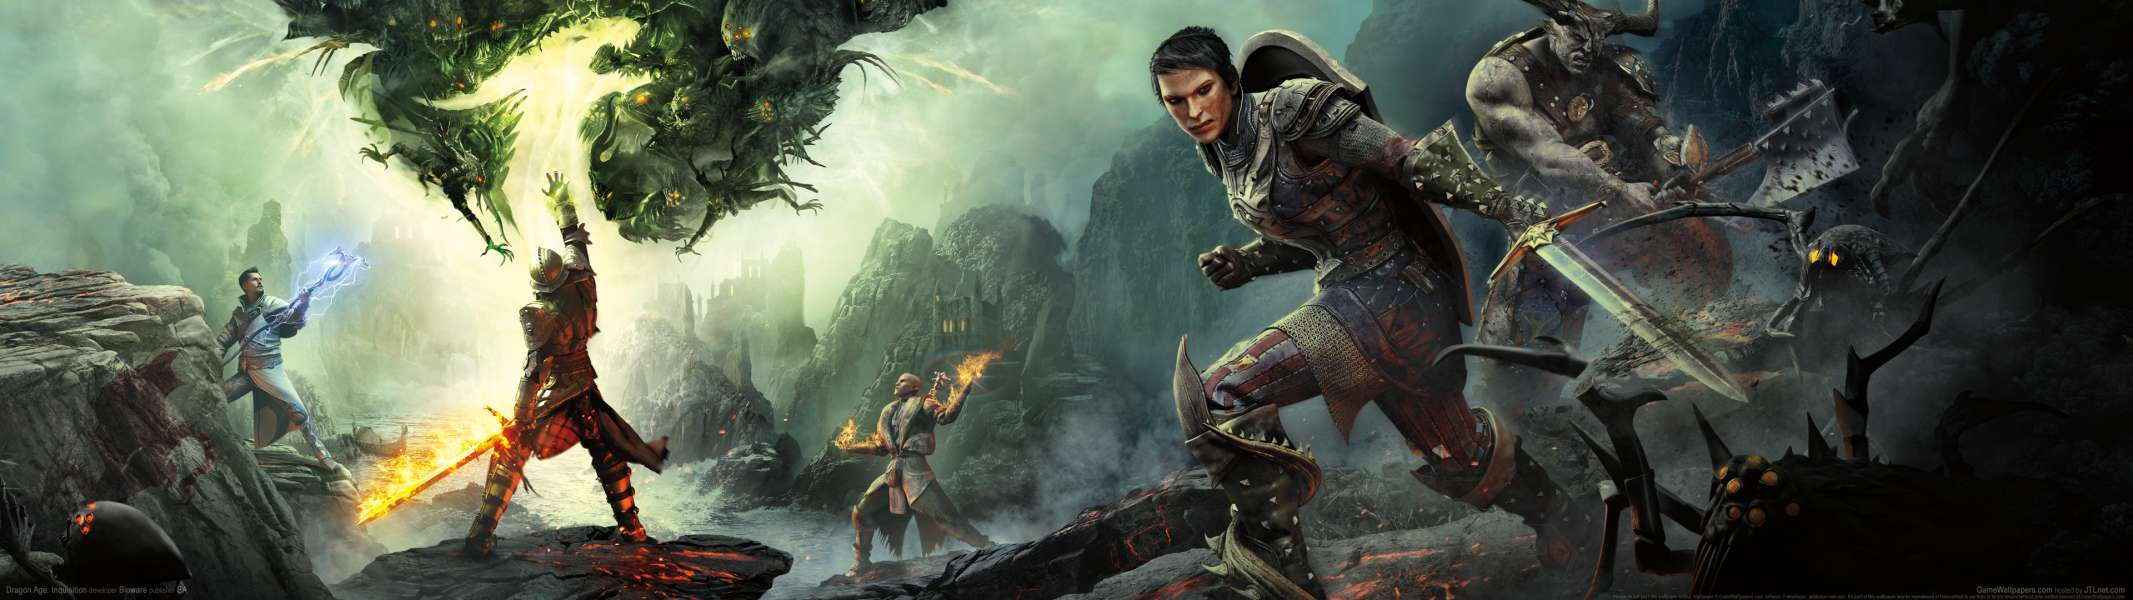 Dragon Age: Inquisition dual screen wallpaper or background